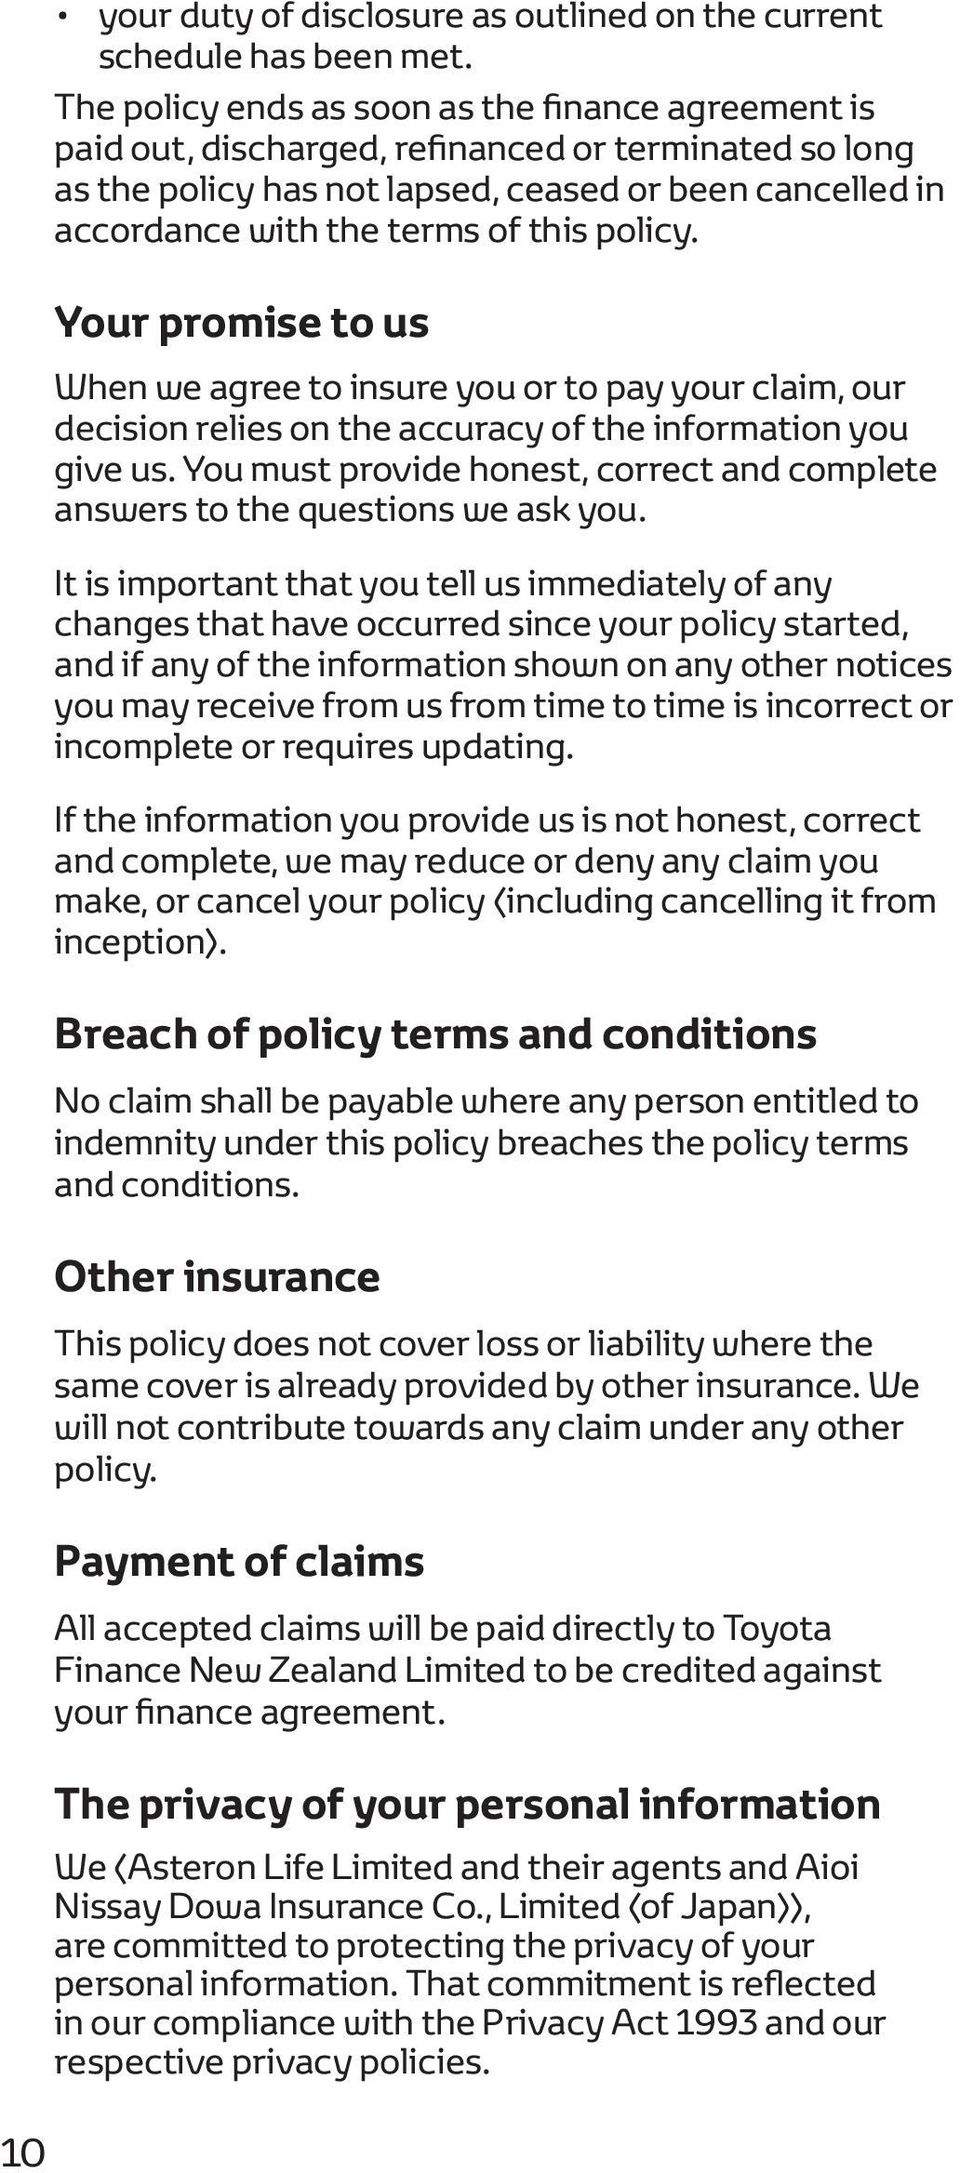 policy. Your promise to us When we agree to insure you or to pay your claim, our decision relies on the accuracy of the information you give us.